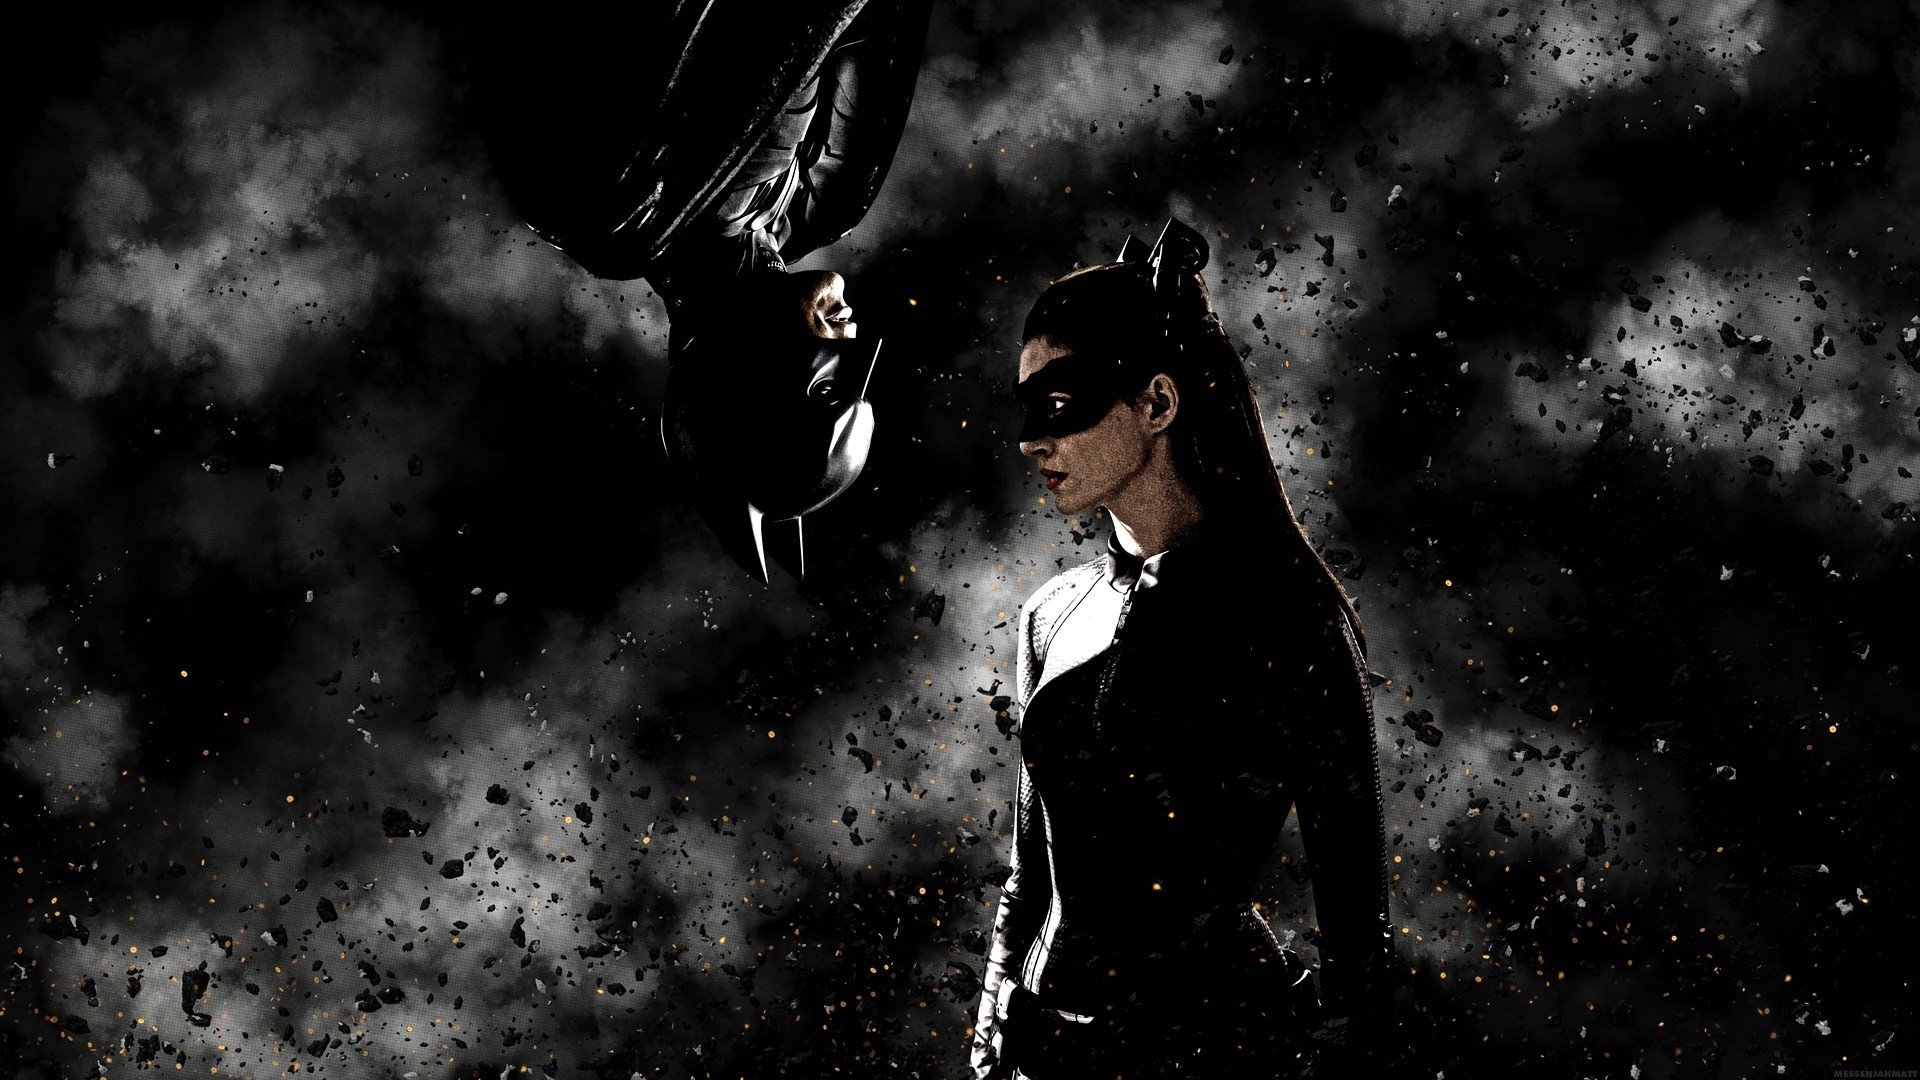 Anne Hathaway Catwoman Wallpaper 72 Images